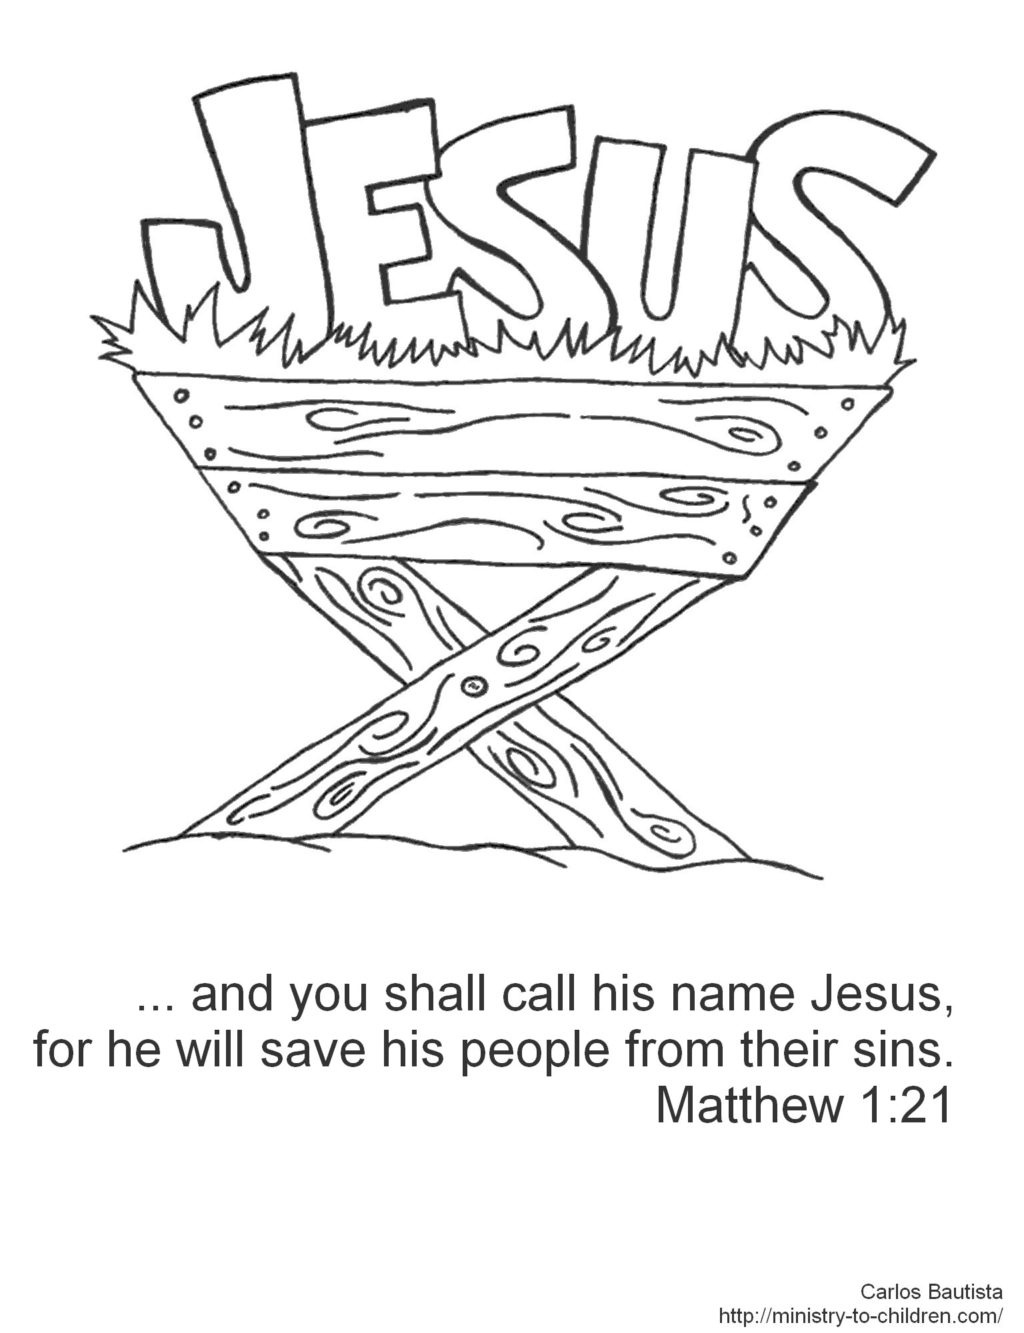 Coloring Book World ~ Christianmas Coloring Pages Free Printable - Free Printable Bible Christmas Coloring Pages